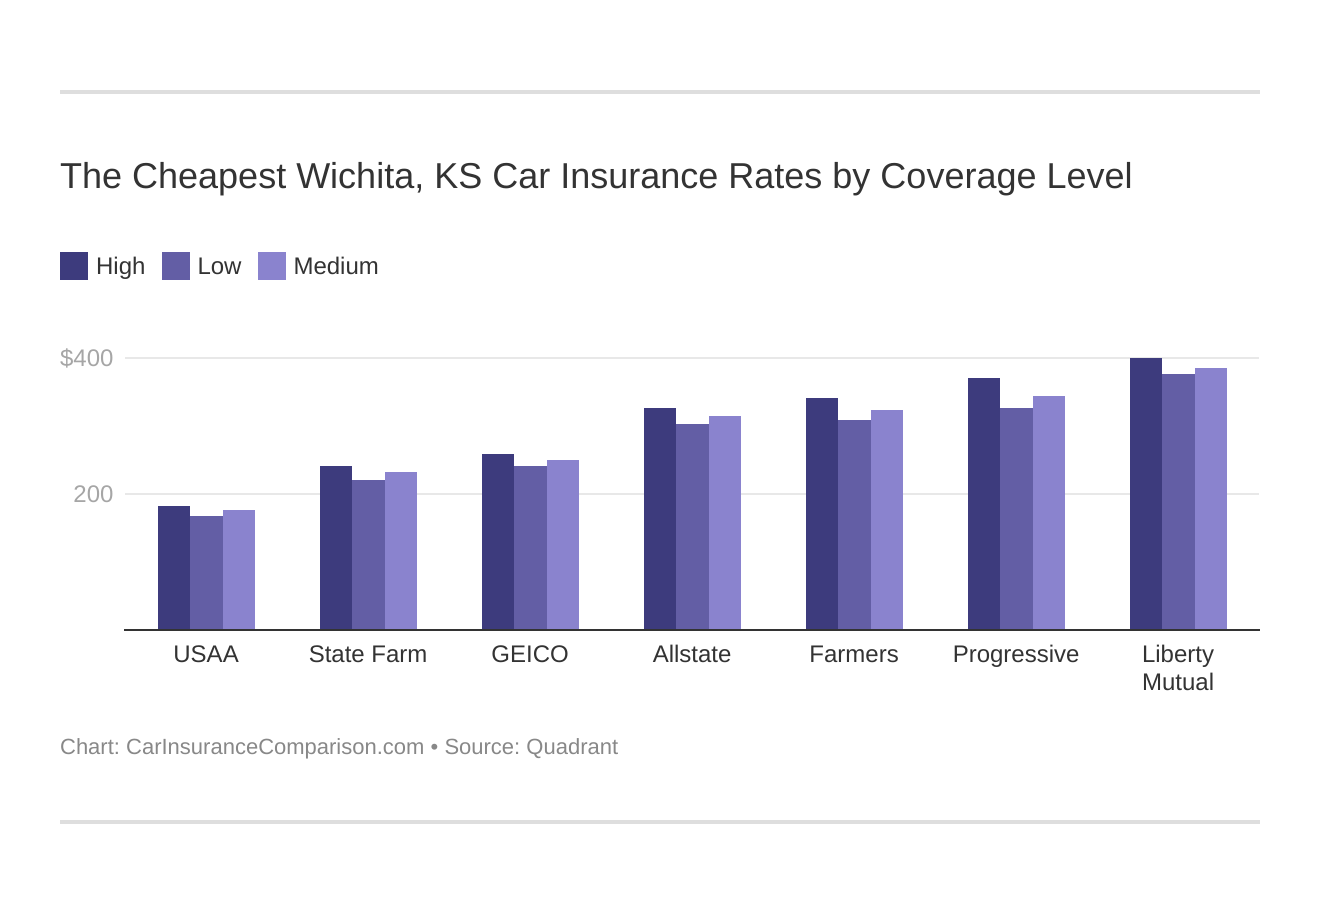 The Cheapest Wichita, KS Car Insurance Rates by Coverage Level